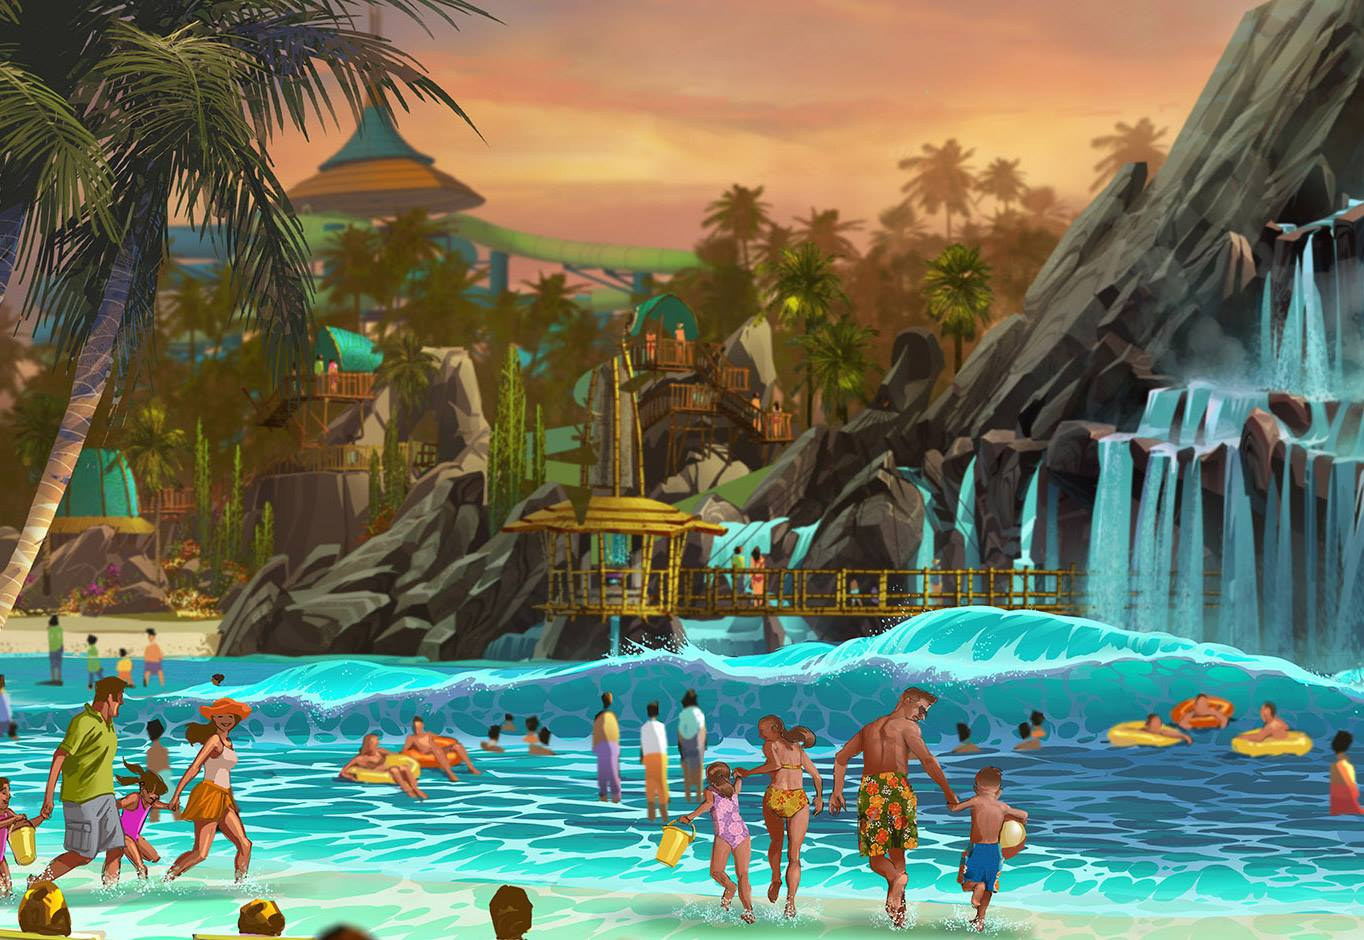 Universal Orlando Announces Their New Water Park Volcano